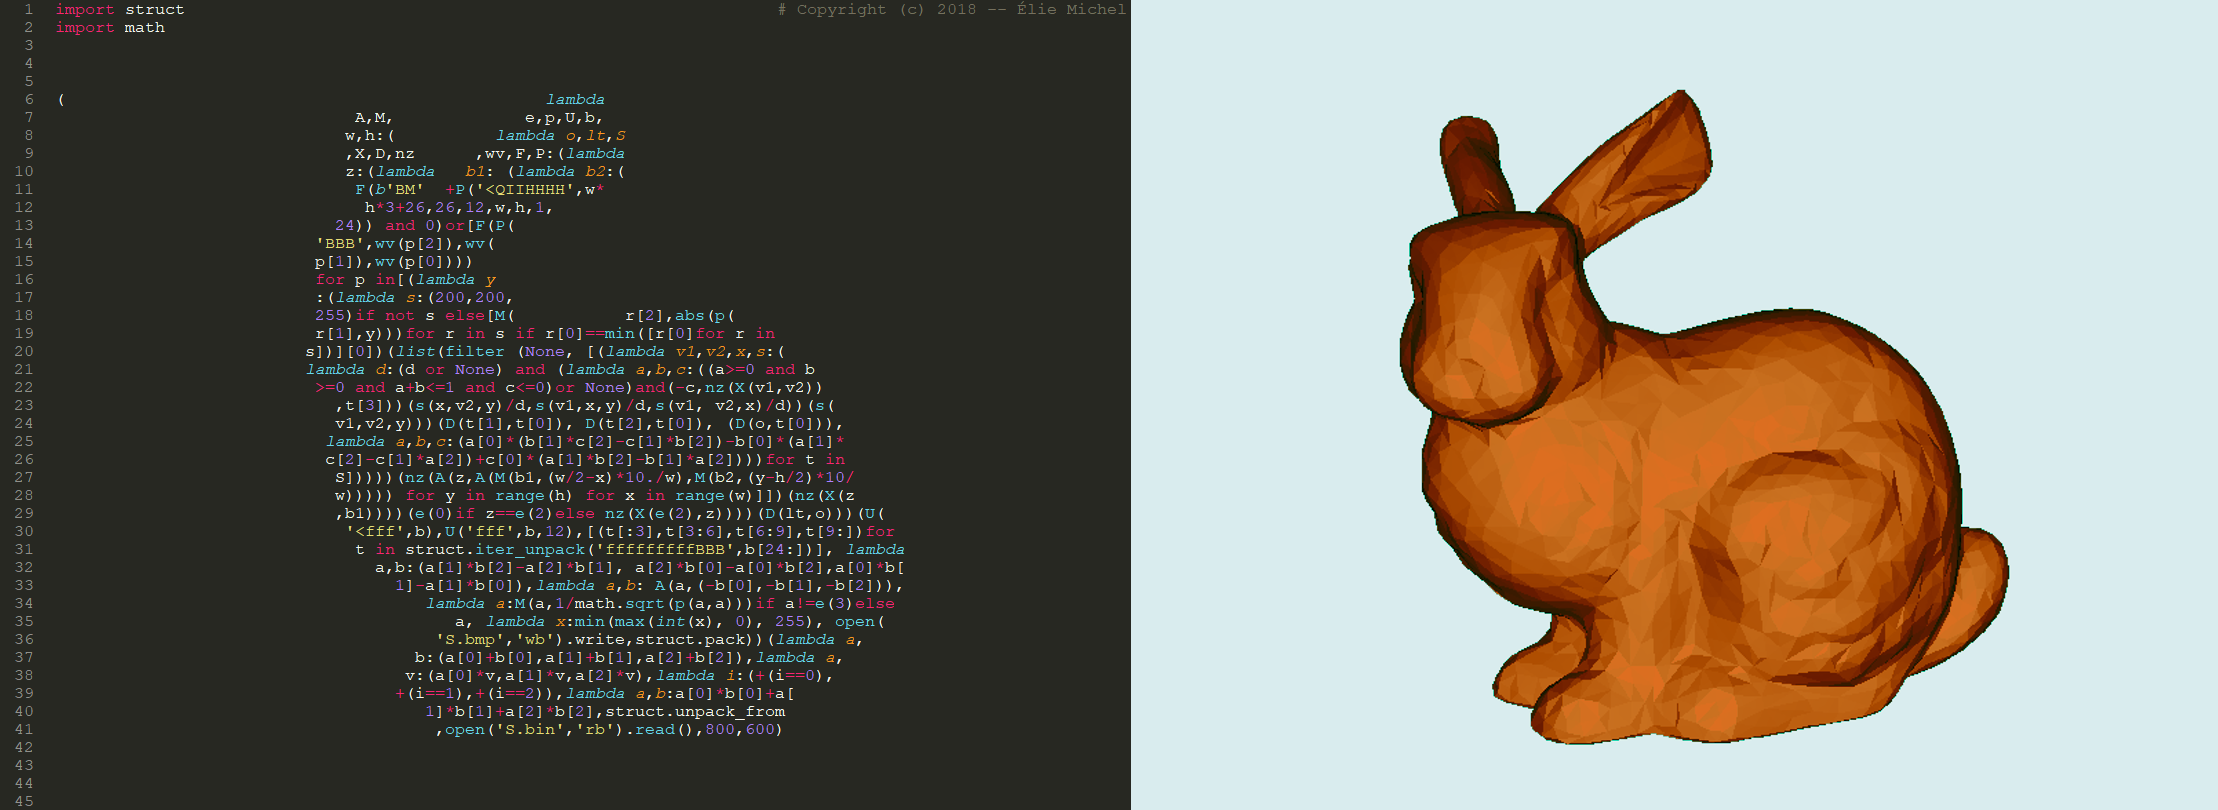 Obfuscated Python Bunny Calligram